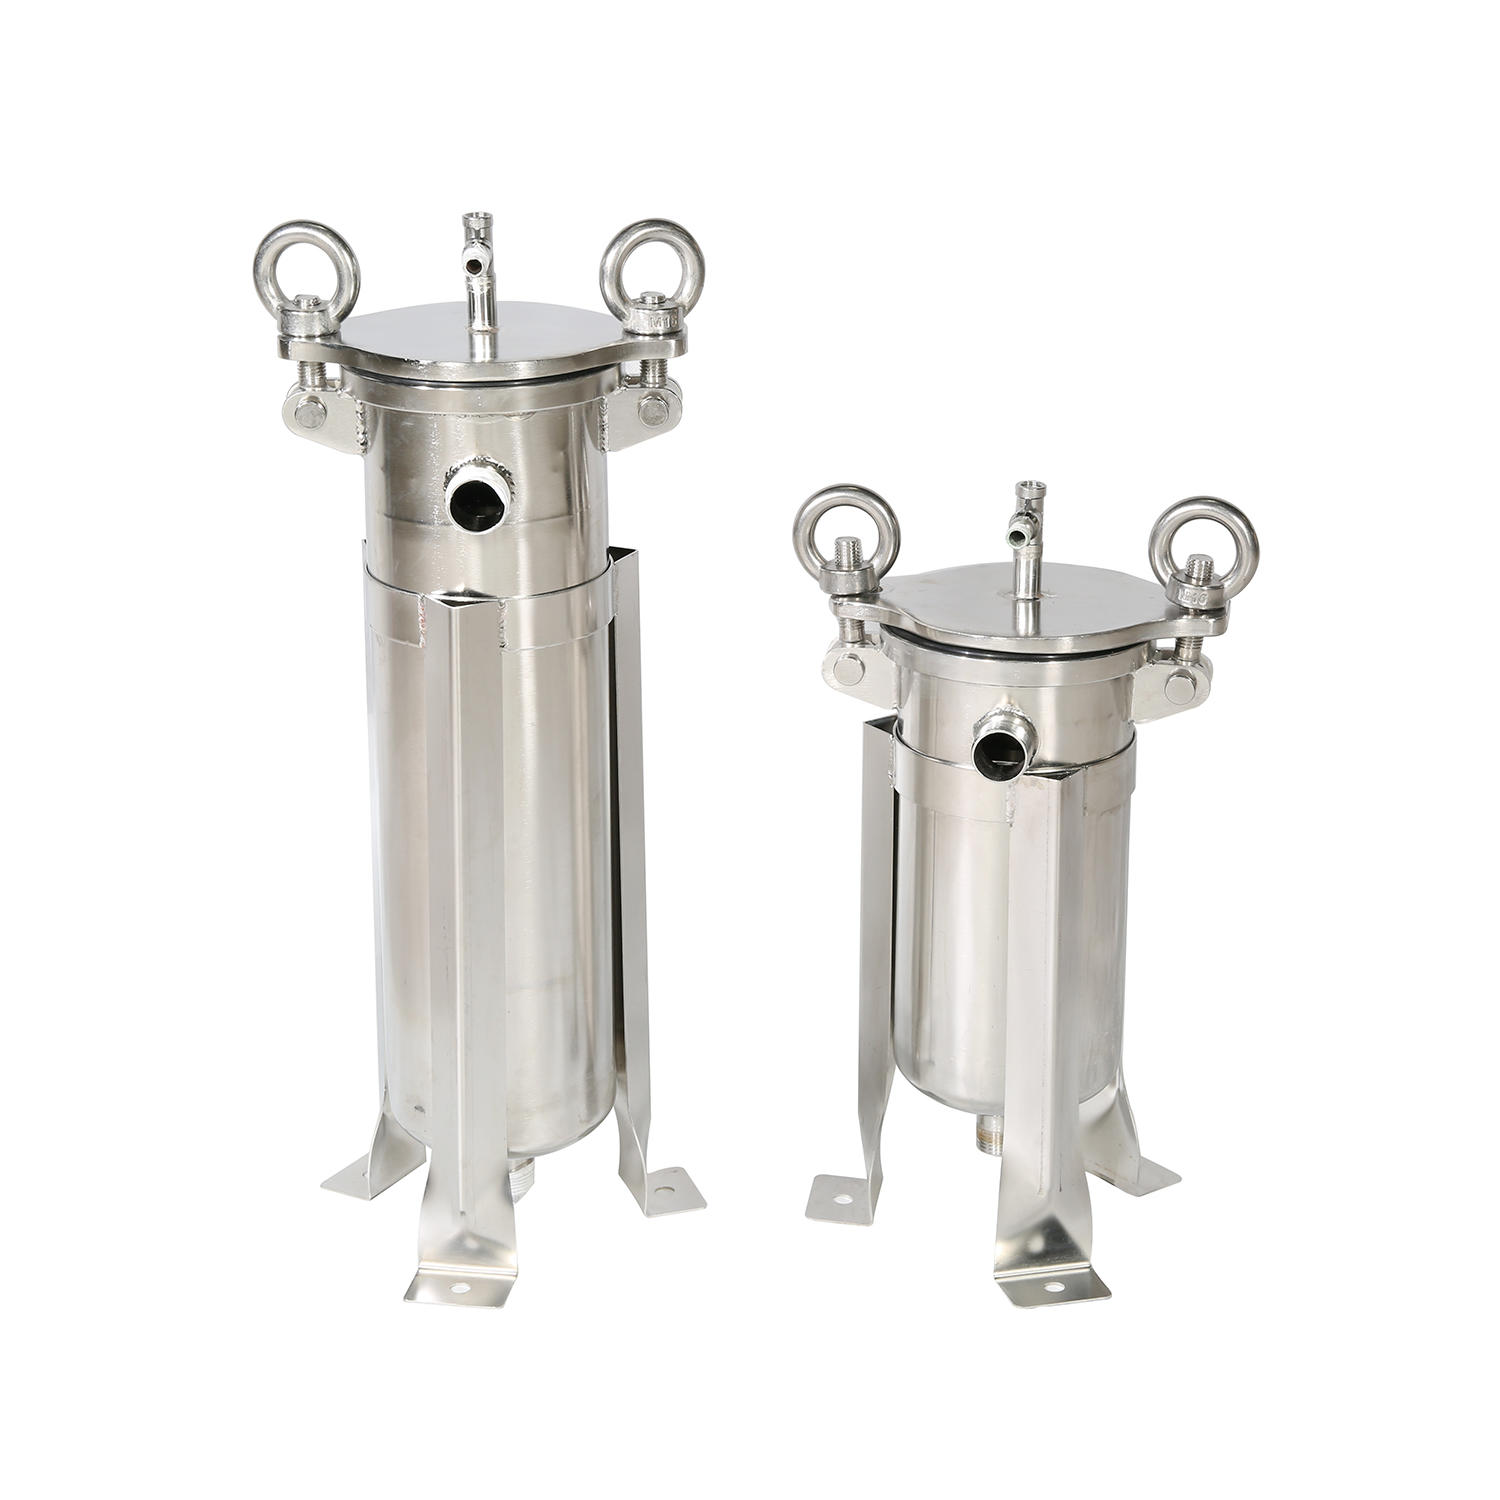 SS stainless steel cartridge filter housing 40 inch